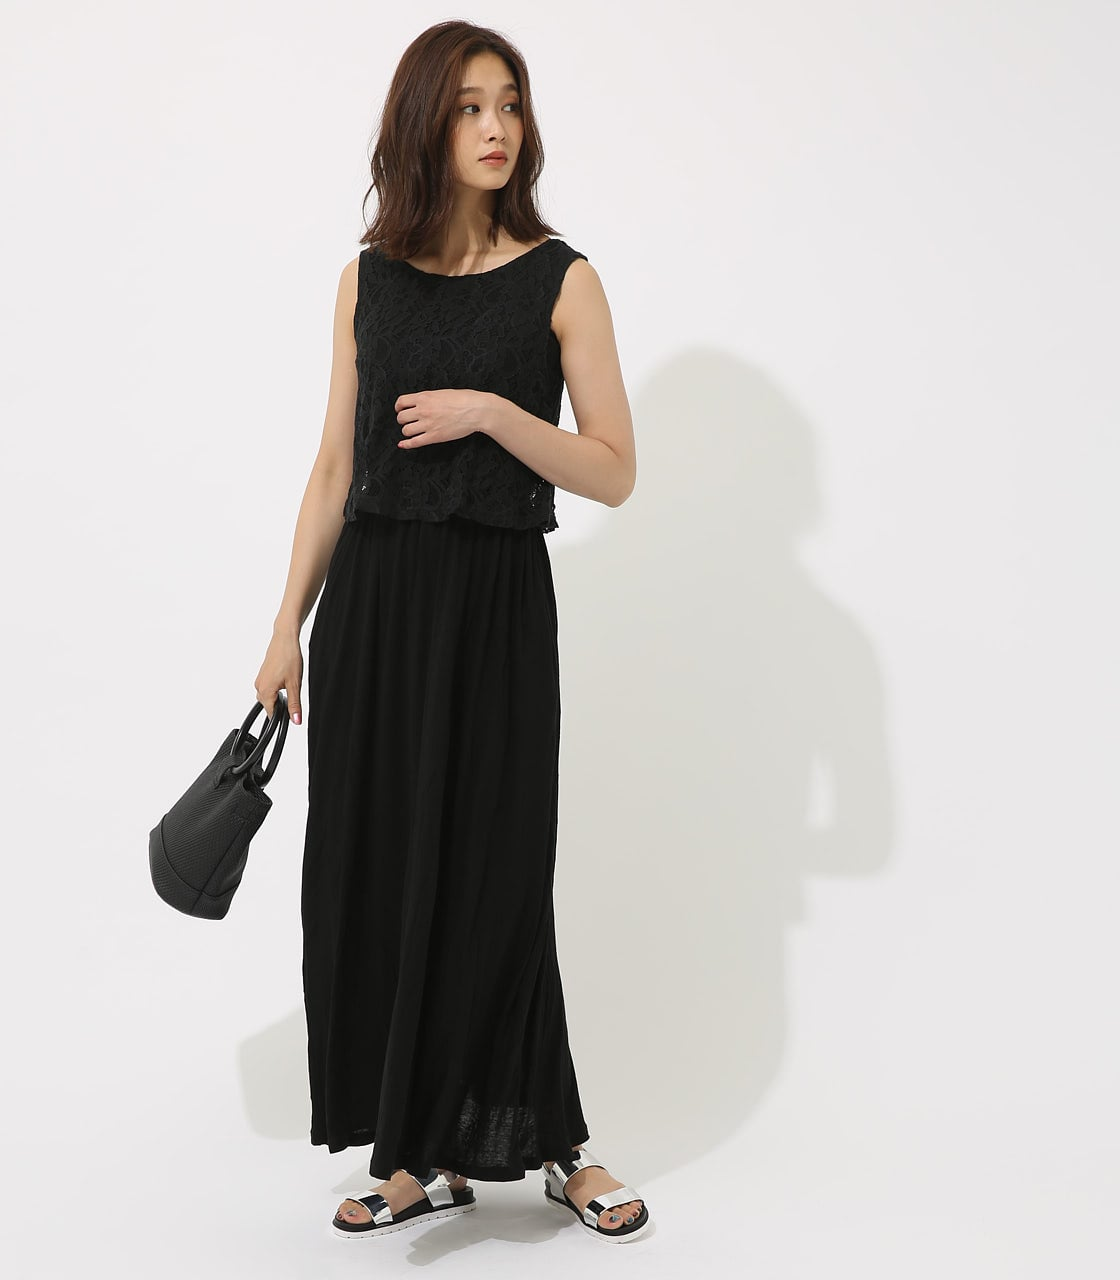 【AZUL BY MOUSSY】レースドッキングワンピース 詳細画像 BLK 1